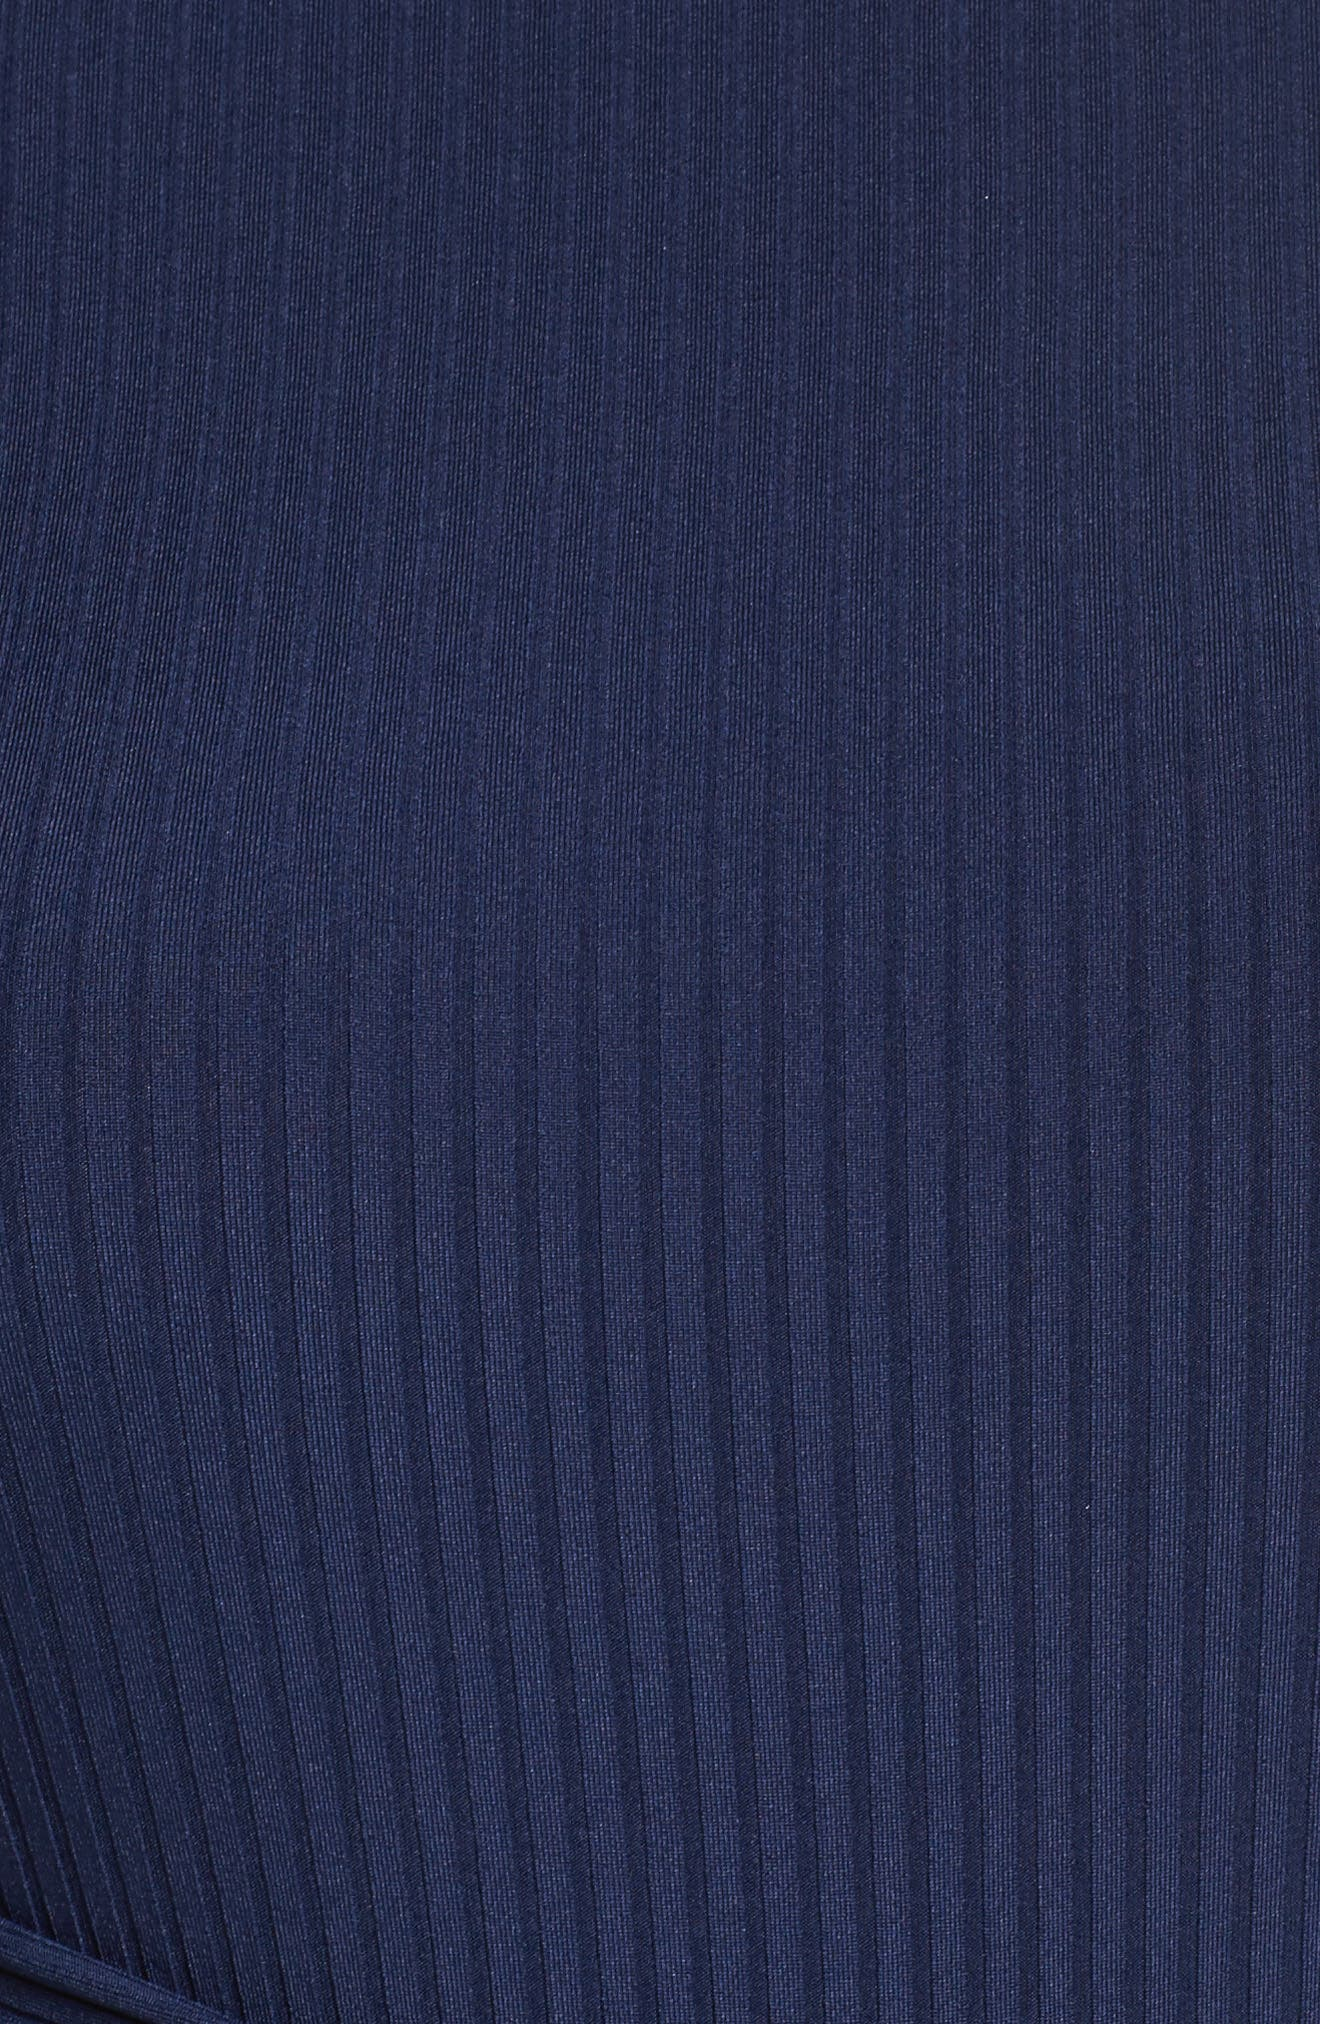 Tie Front Ribbed Sheath Dress,                             Alternate thumbnail 7, color,                             Navy